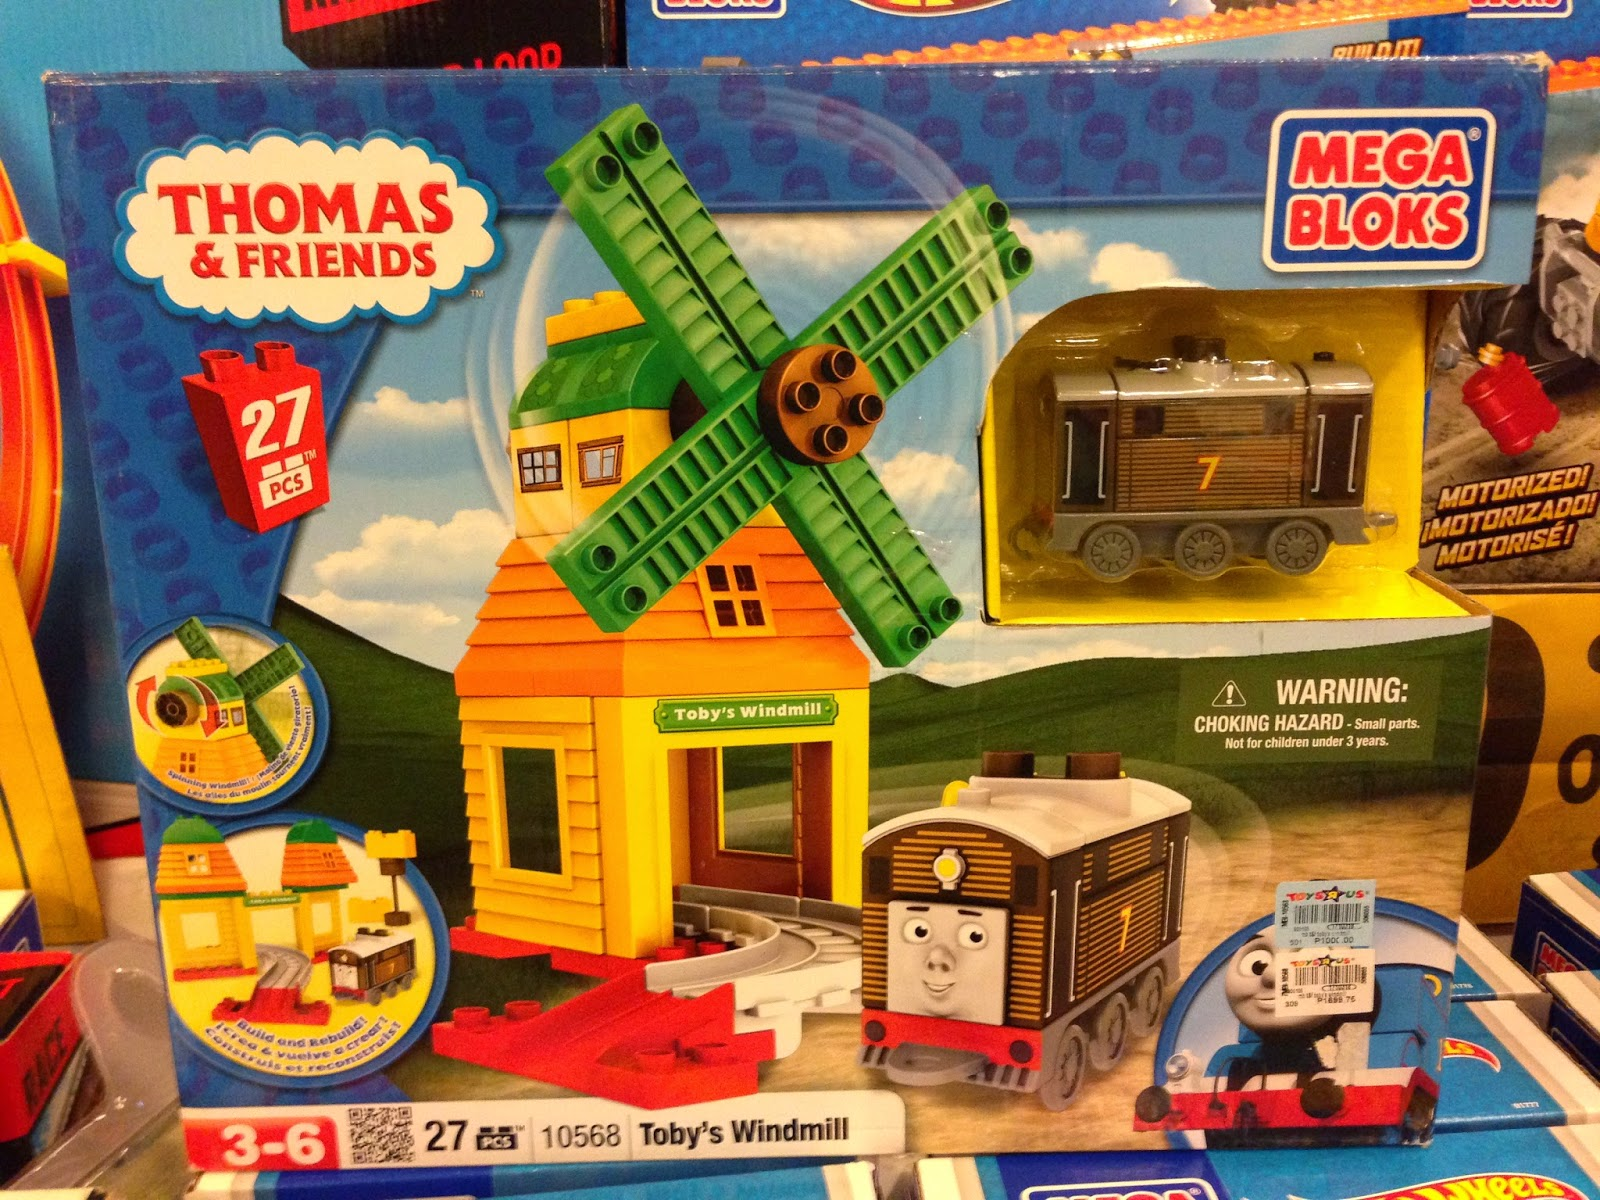 Thomas & Friends Mega Bloks on Sale in Manila, Philippines.  Toys R' Us and Toy Kingdom (Toby's Windmill)